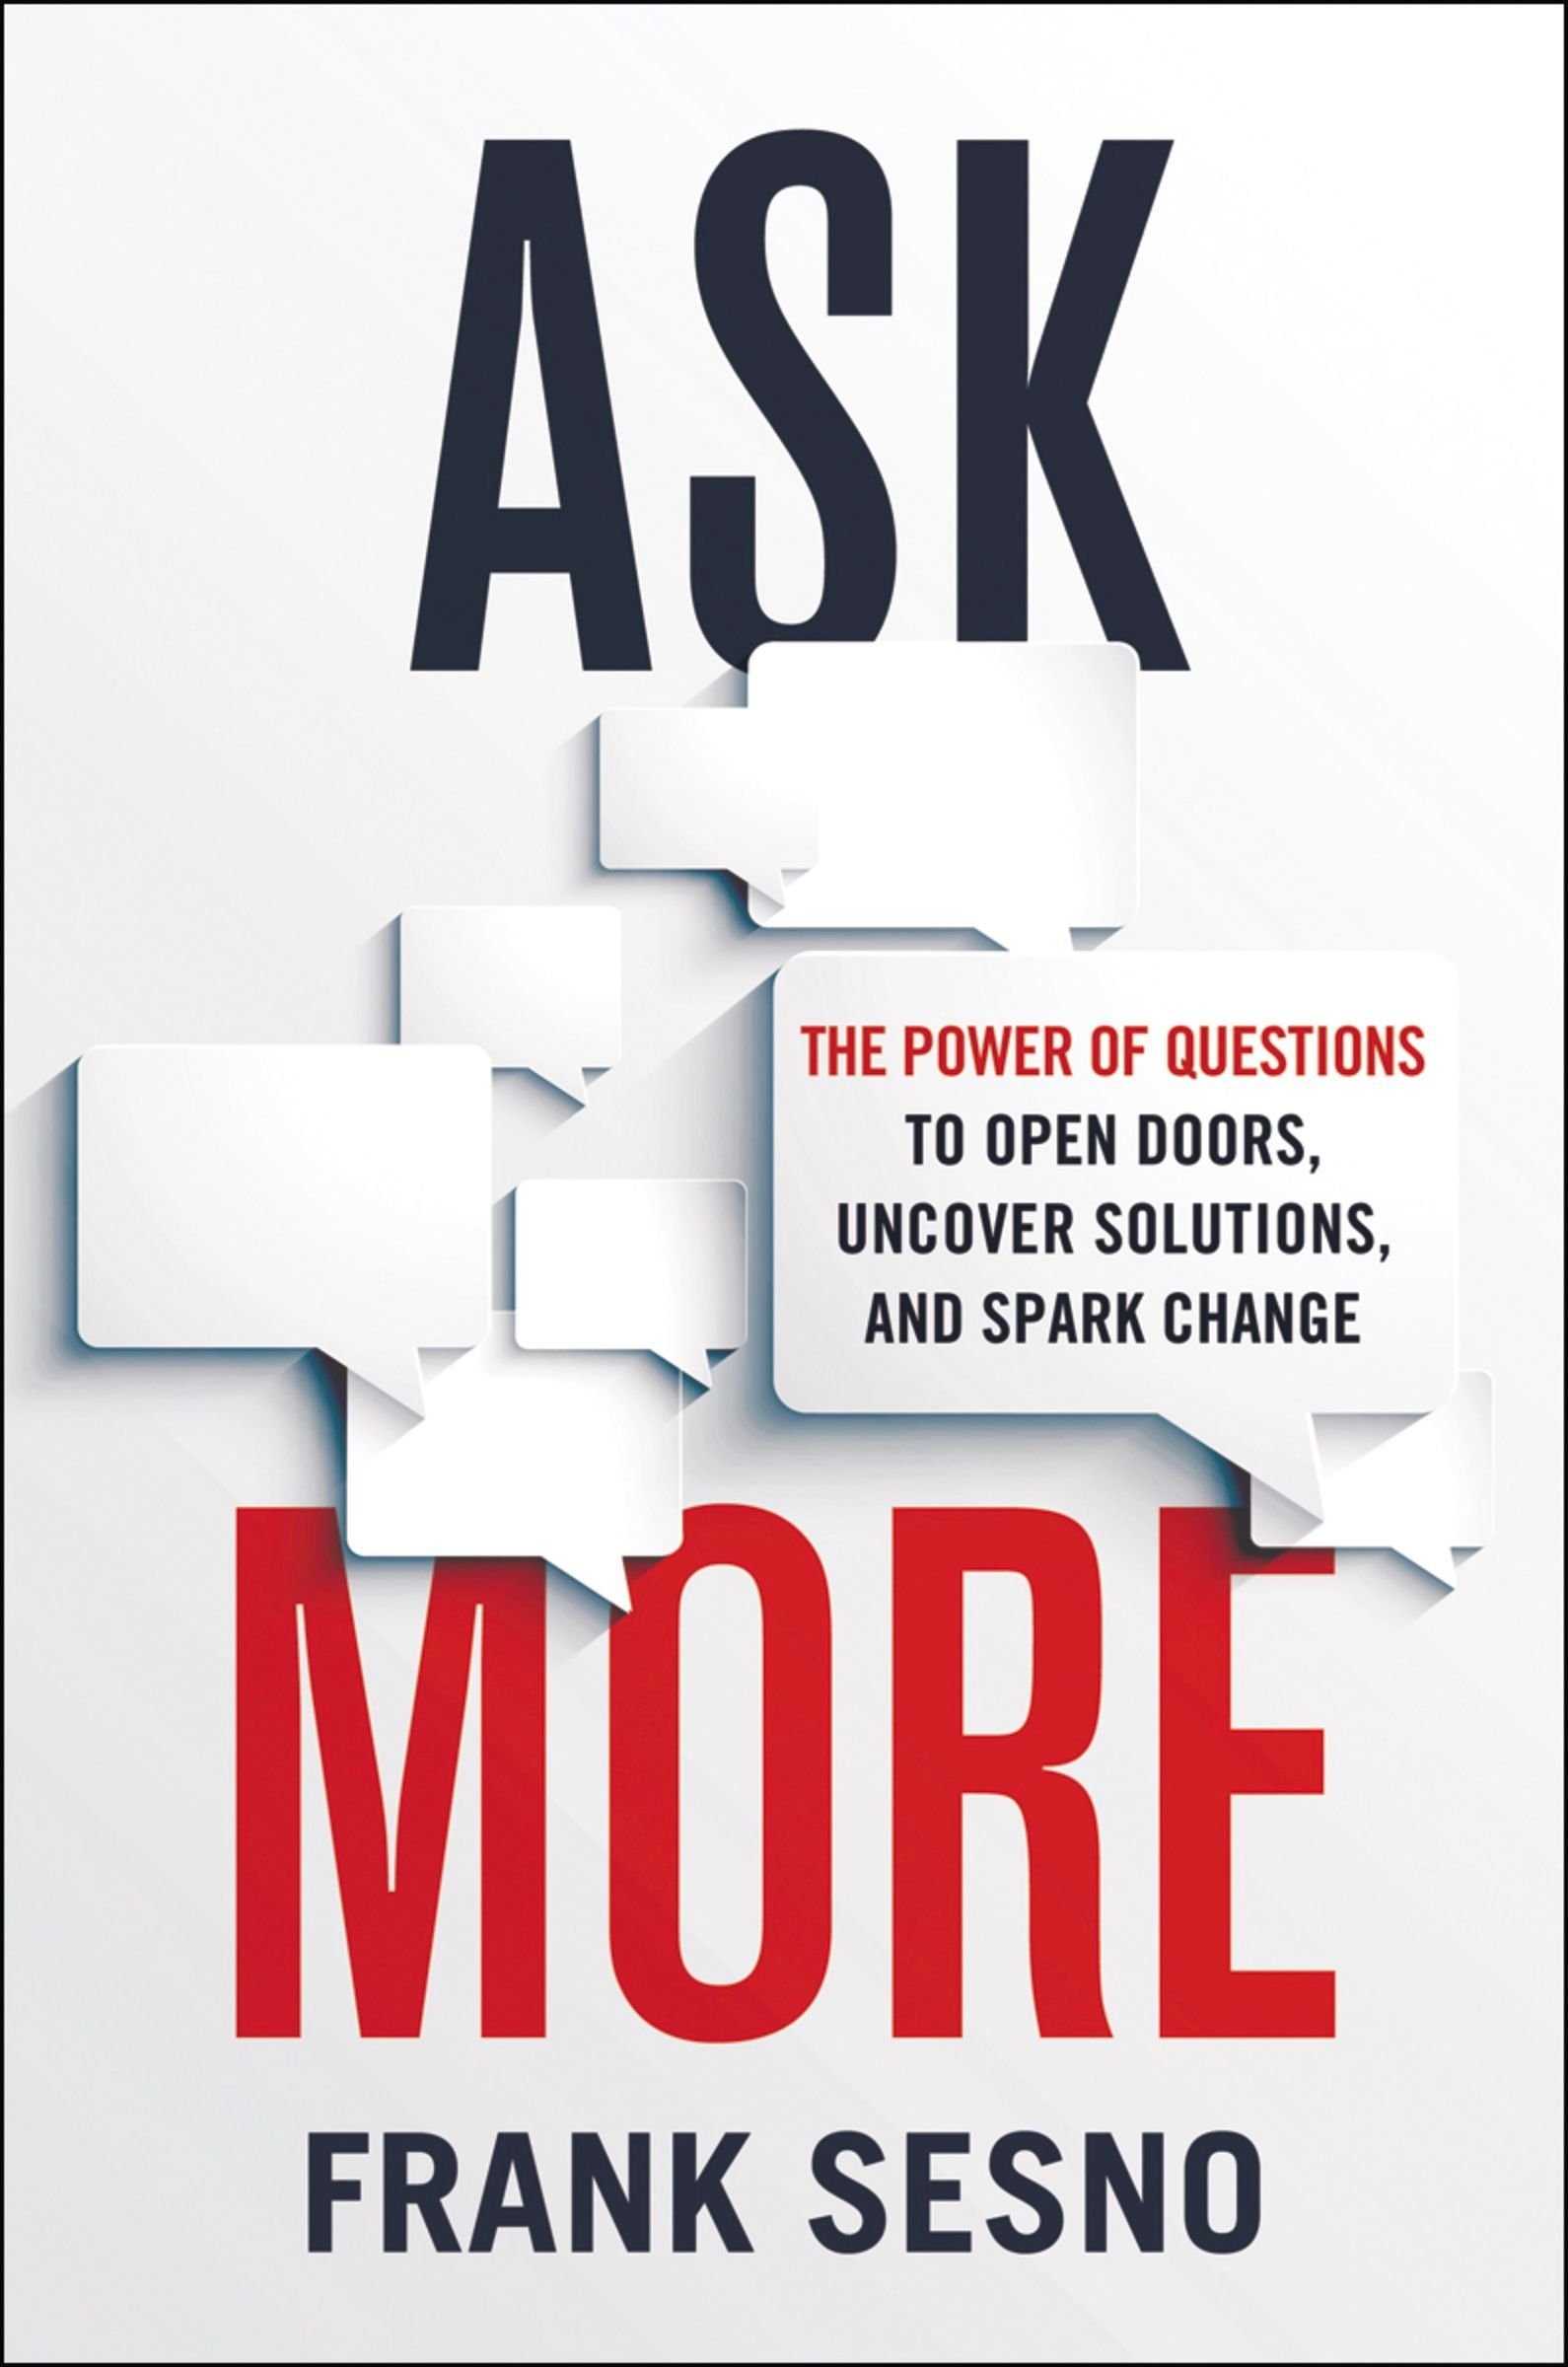 Ask more frank sesno